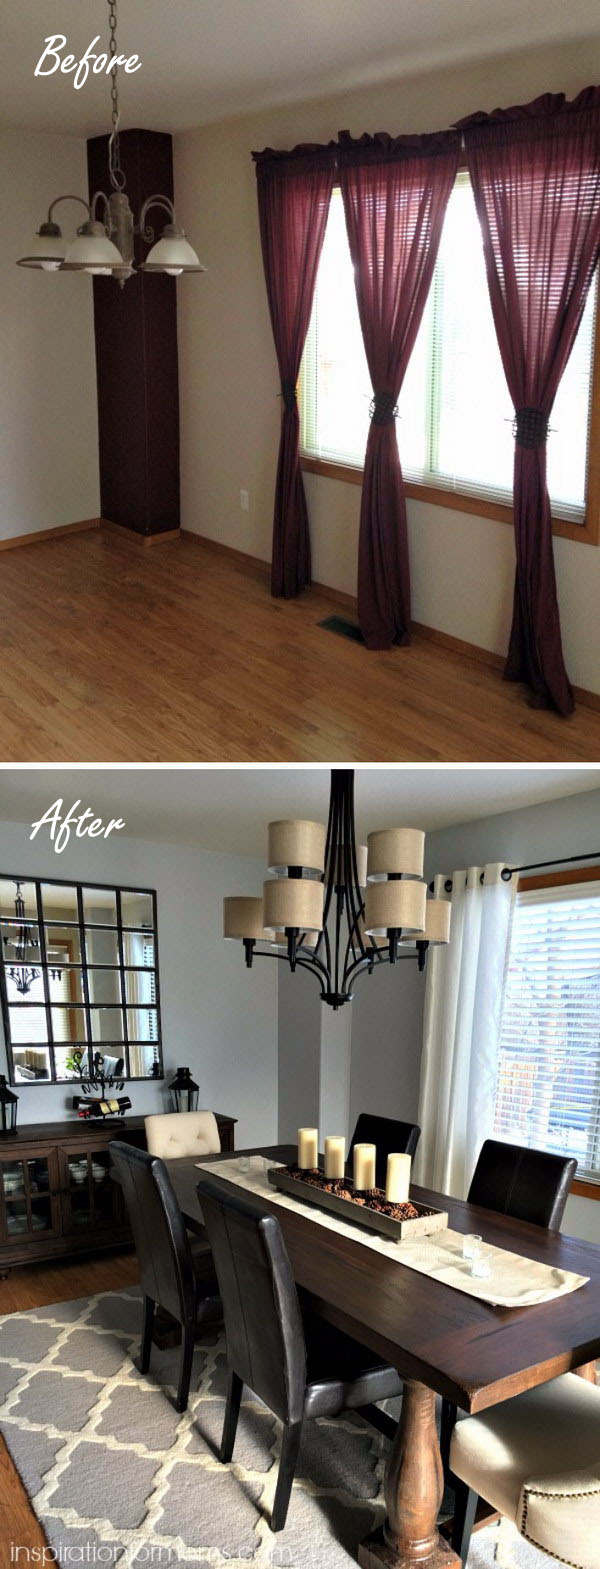 54-55-dining-room-makeover-ideas-tutorials